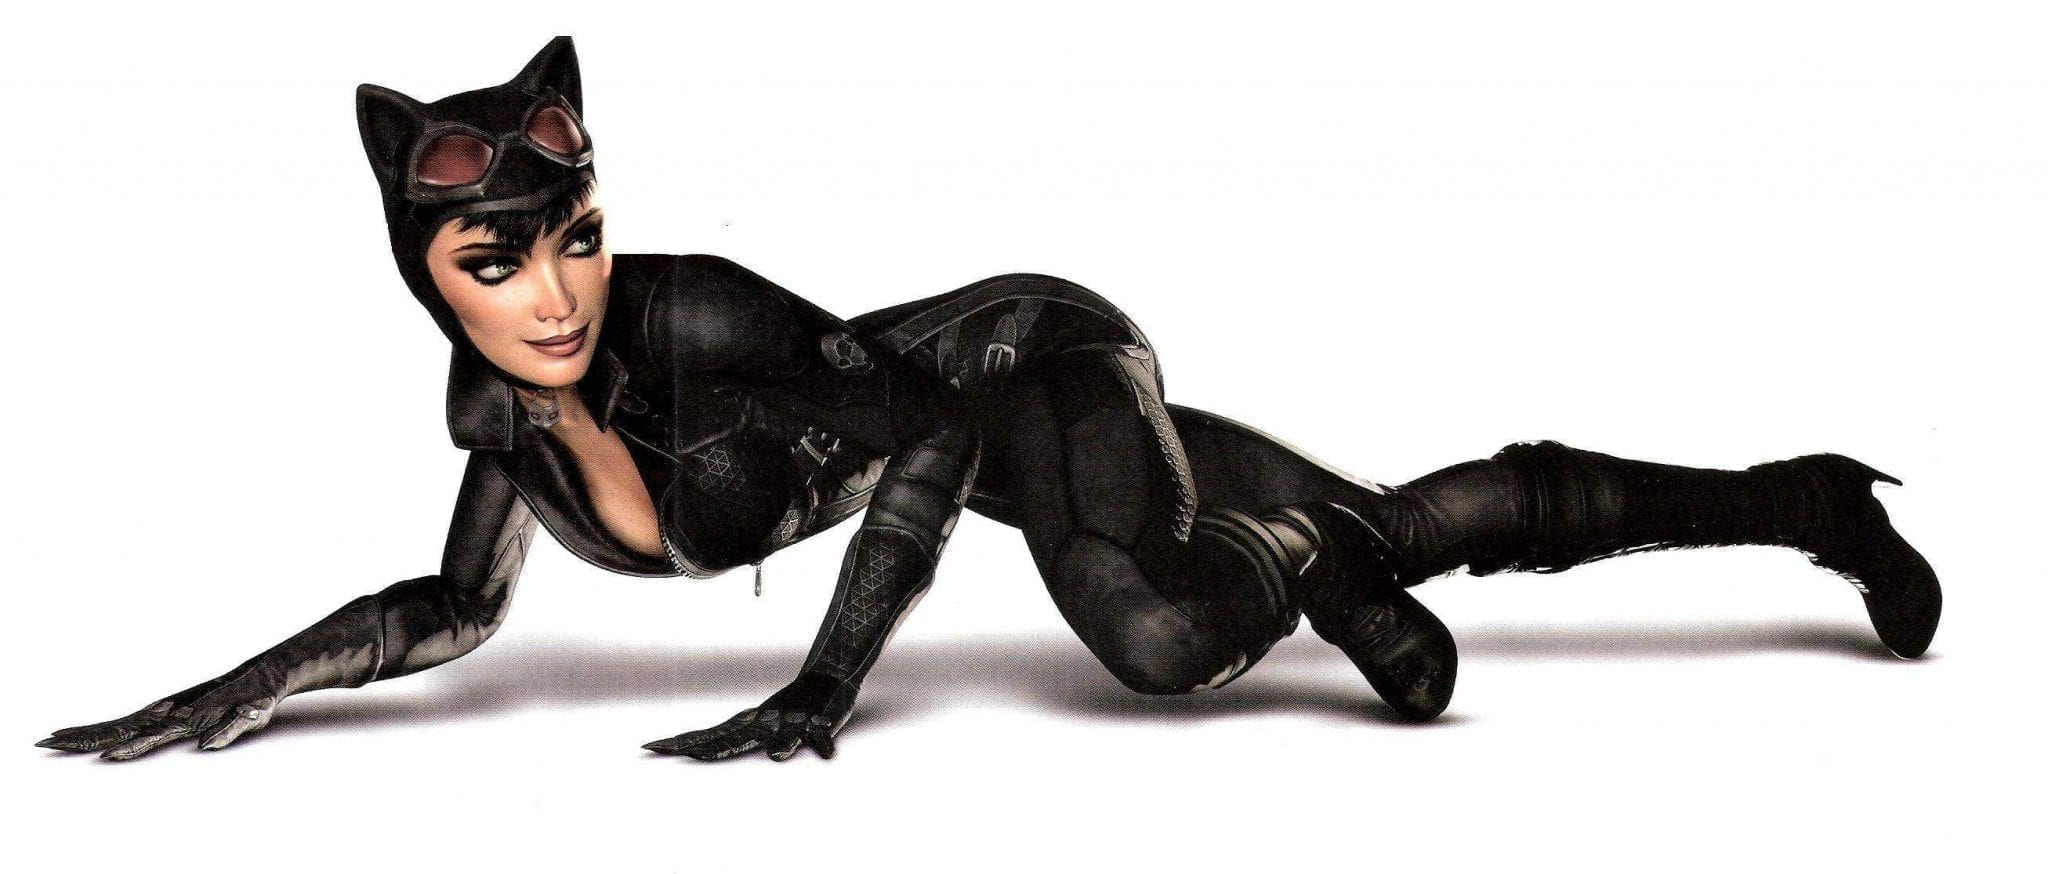 Catwoman HRTime - Stealth Mode